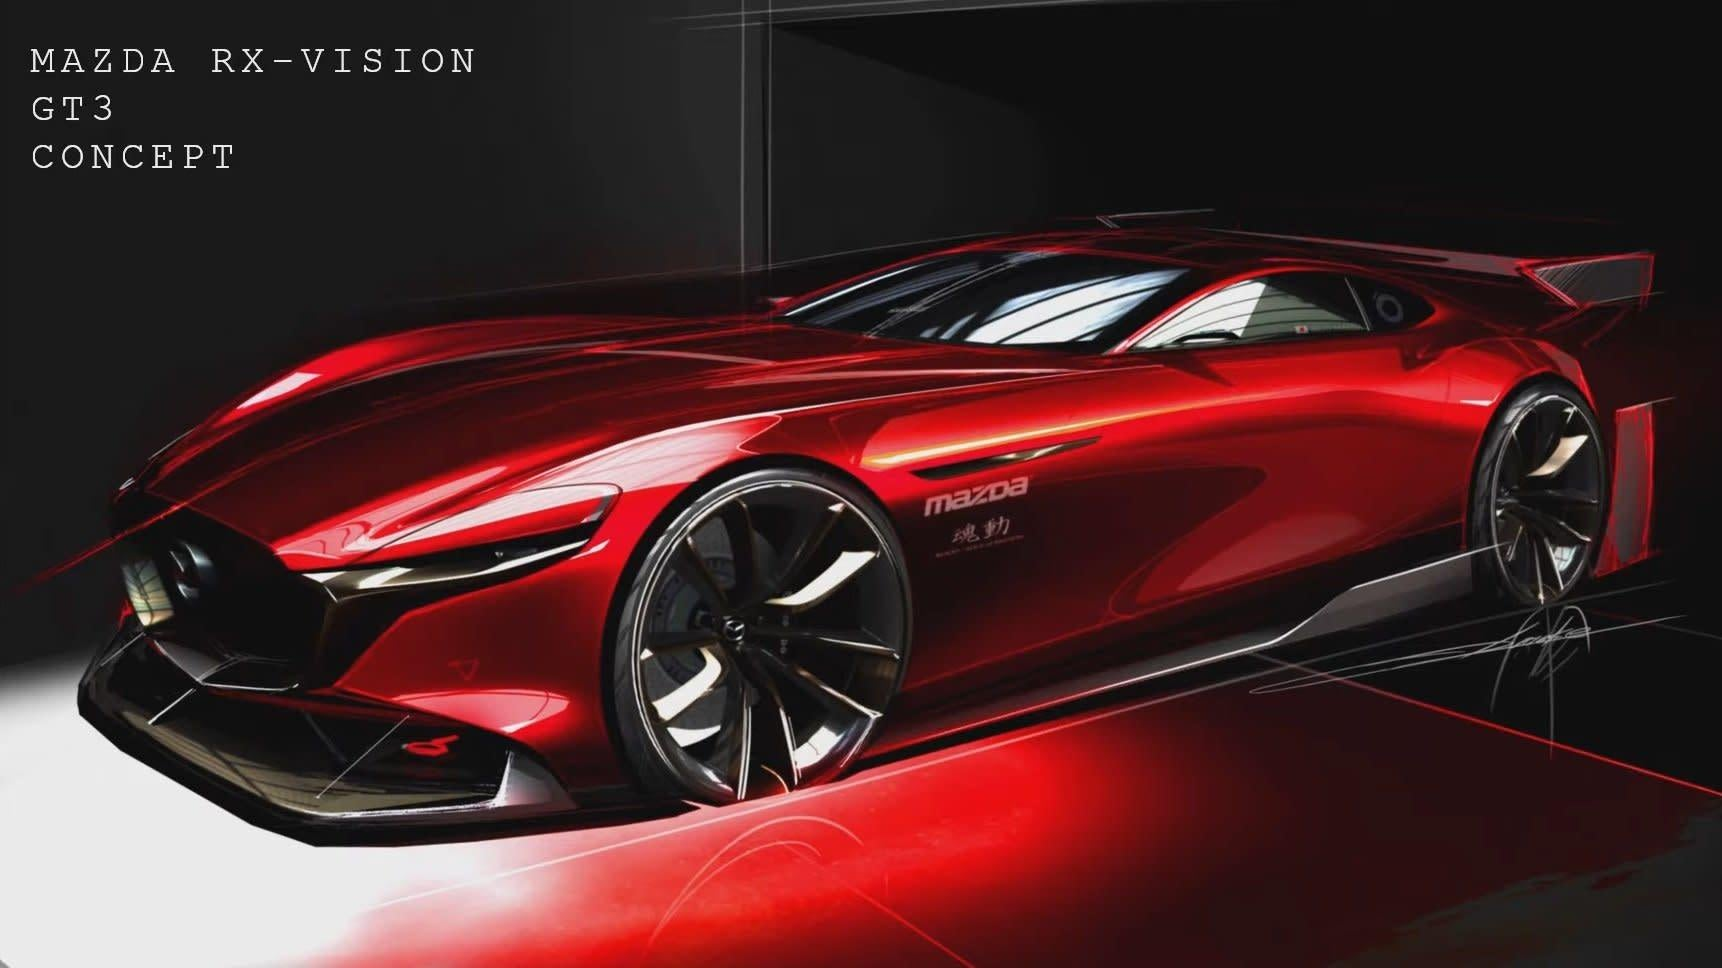 Stop Teasing And Give Us The RX-Vision GT3 Already, Mazda